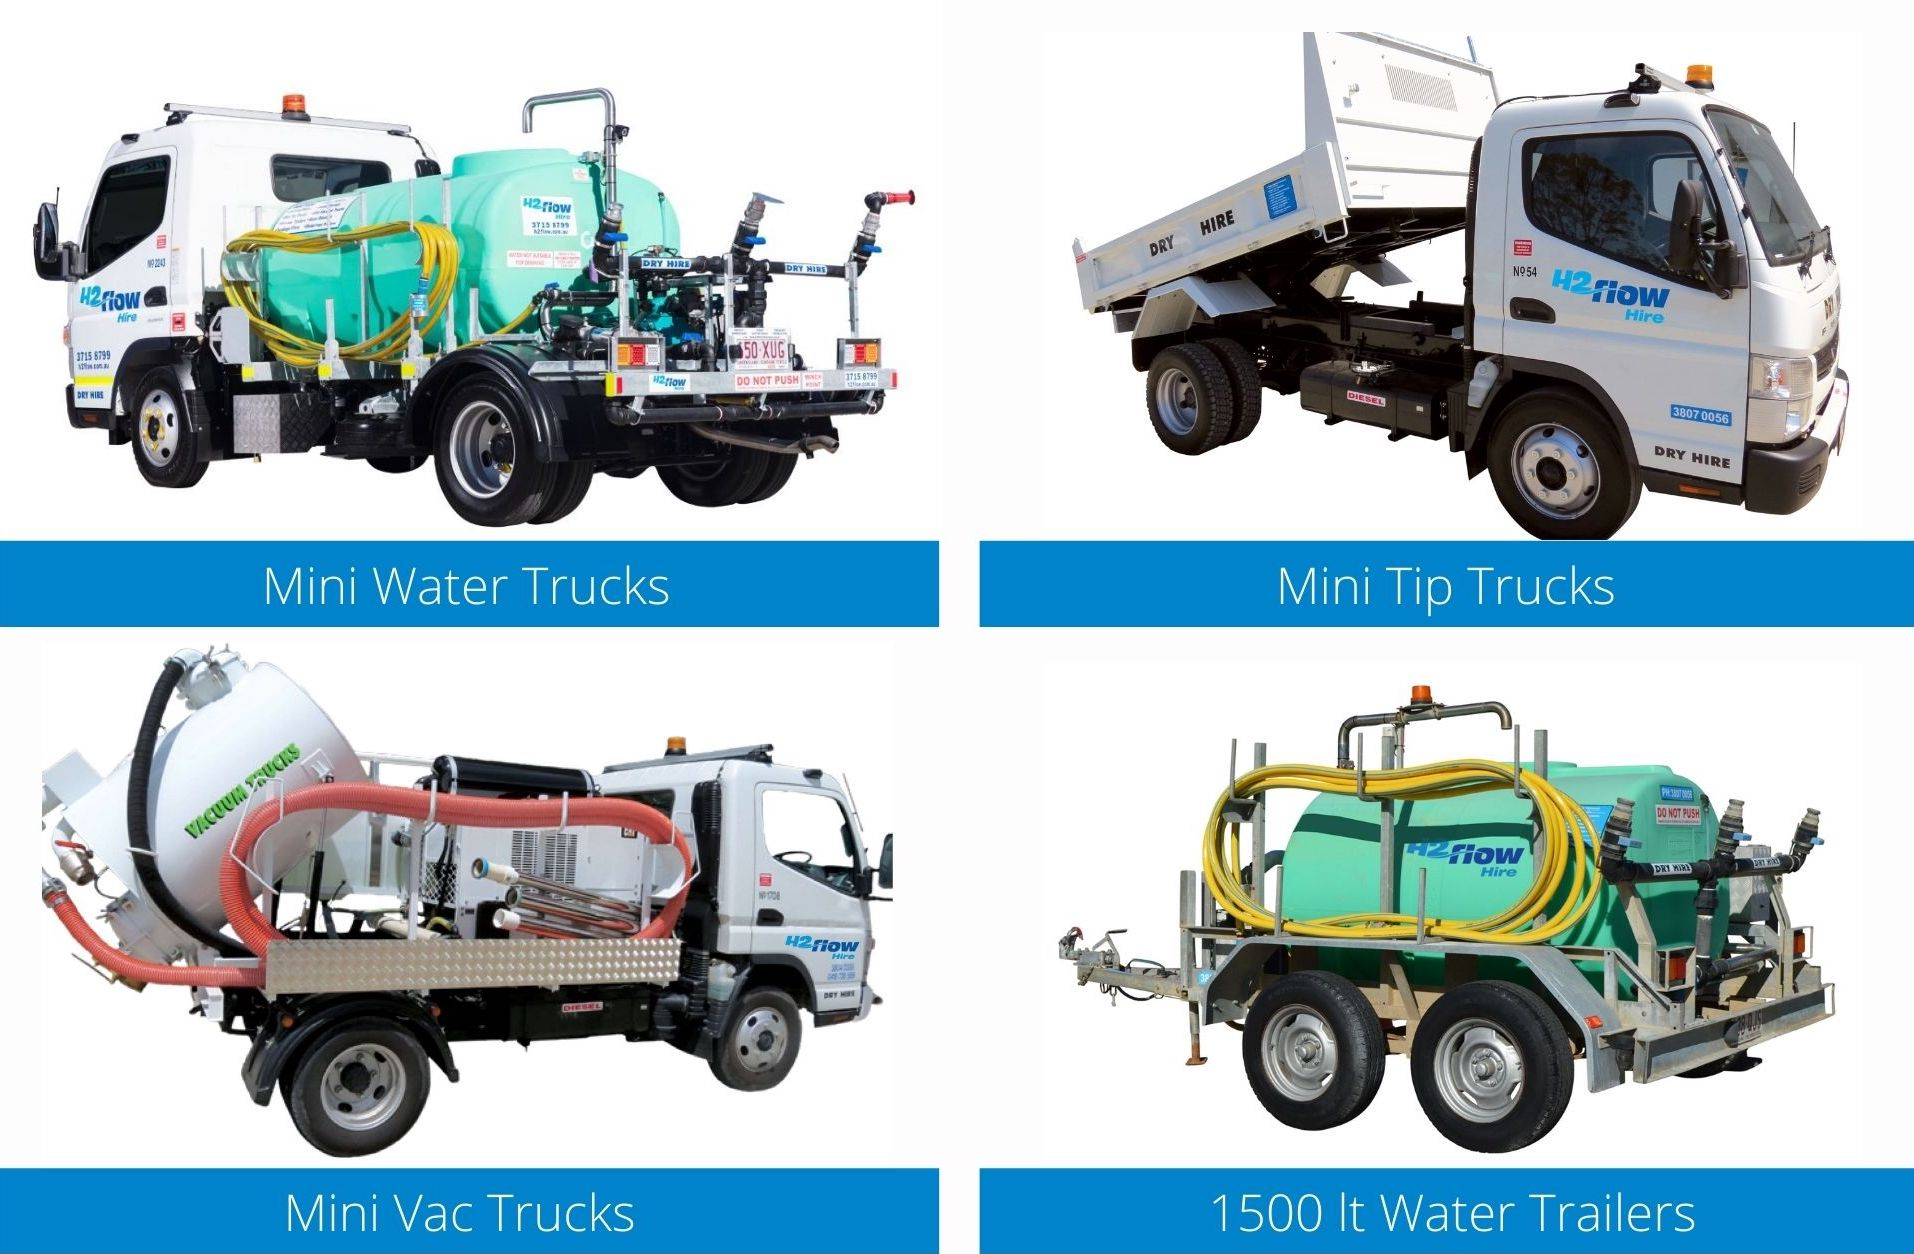 H2flow Hire Dry Hire Equipment